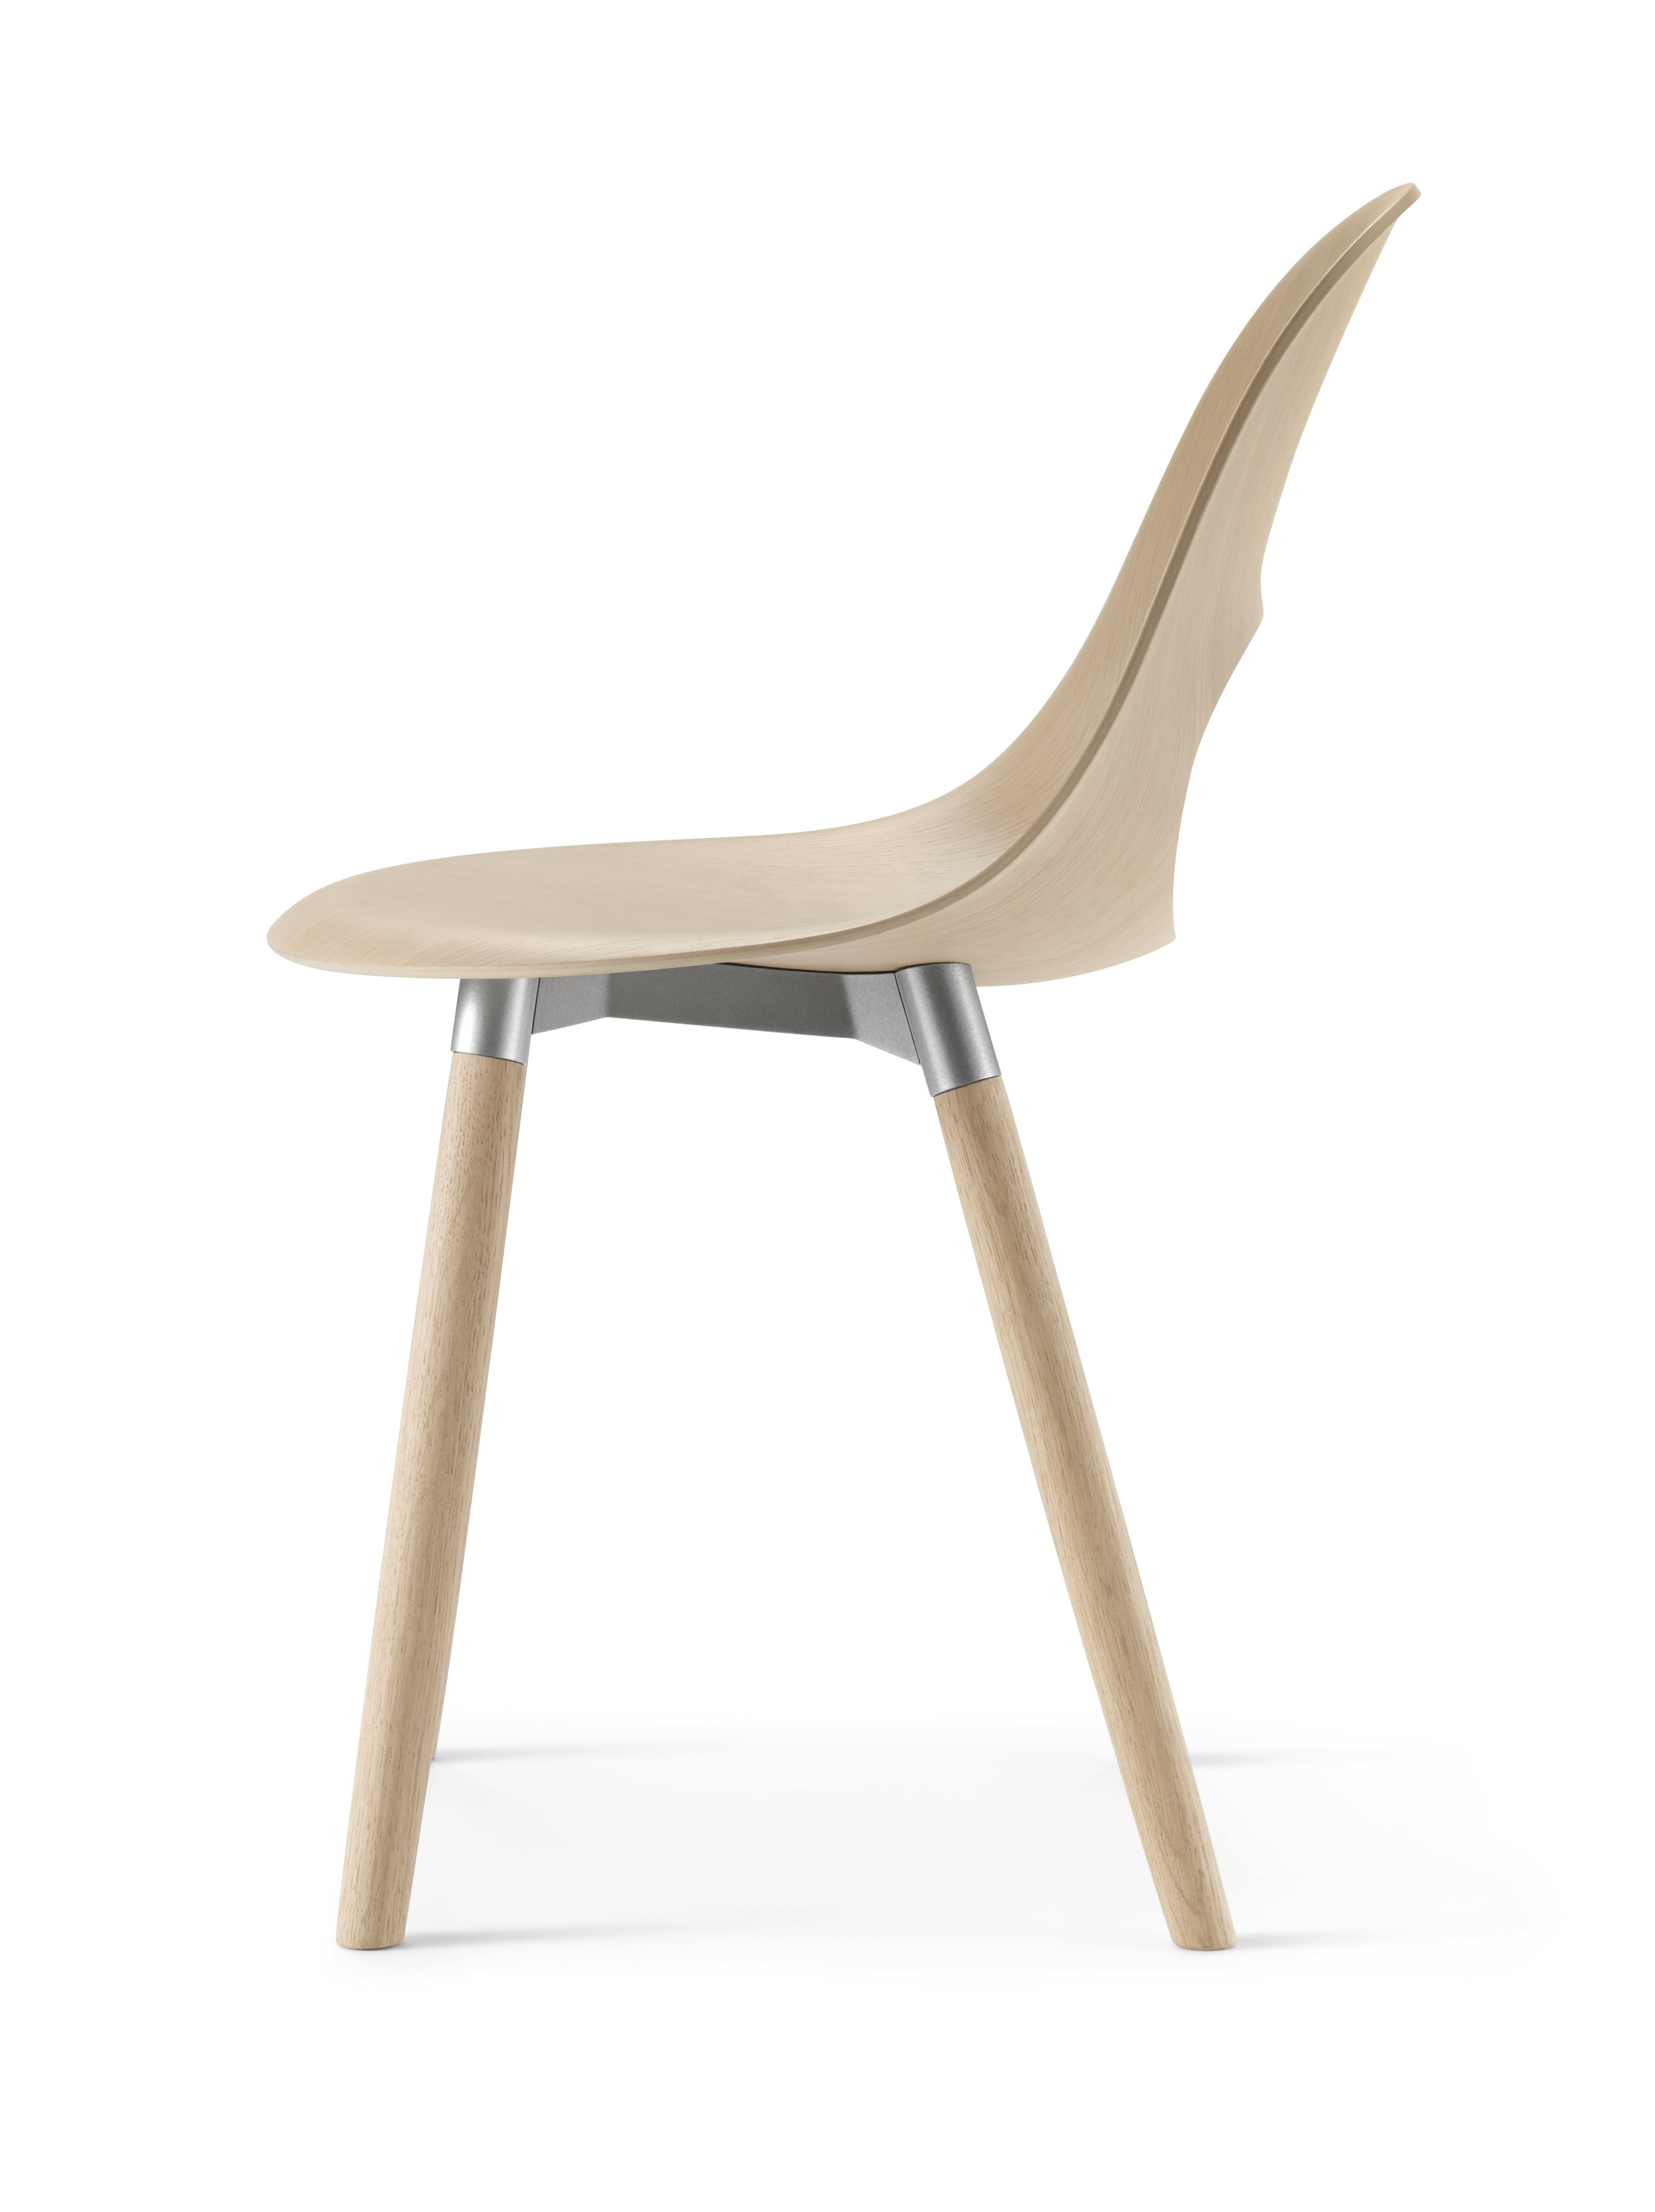 This beautiful SayO Chair in raw wood with and wood legs seen in profile. May be acquired with different types of wood veneer. Find out more at www.sayo.dk.